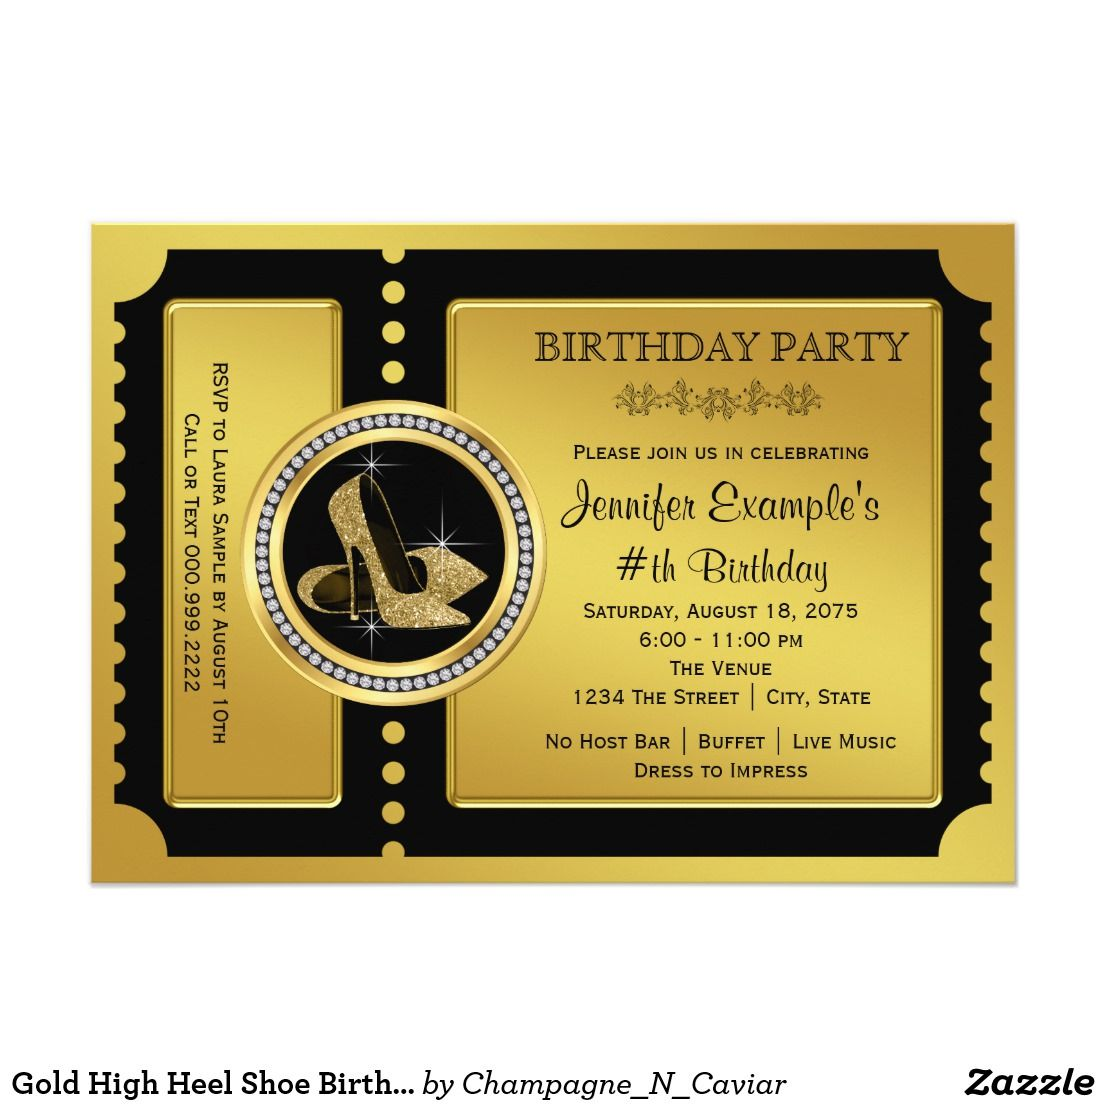 Gold High Heel Shoe Birthday Party Card | Ticket invitation, Party ...